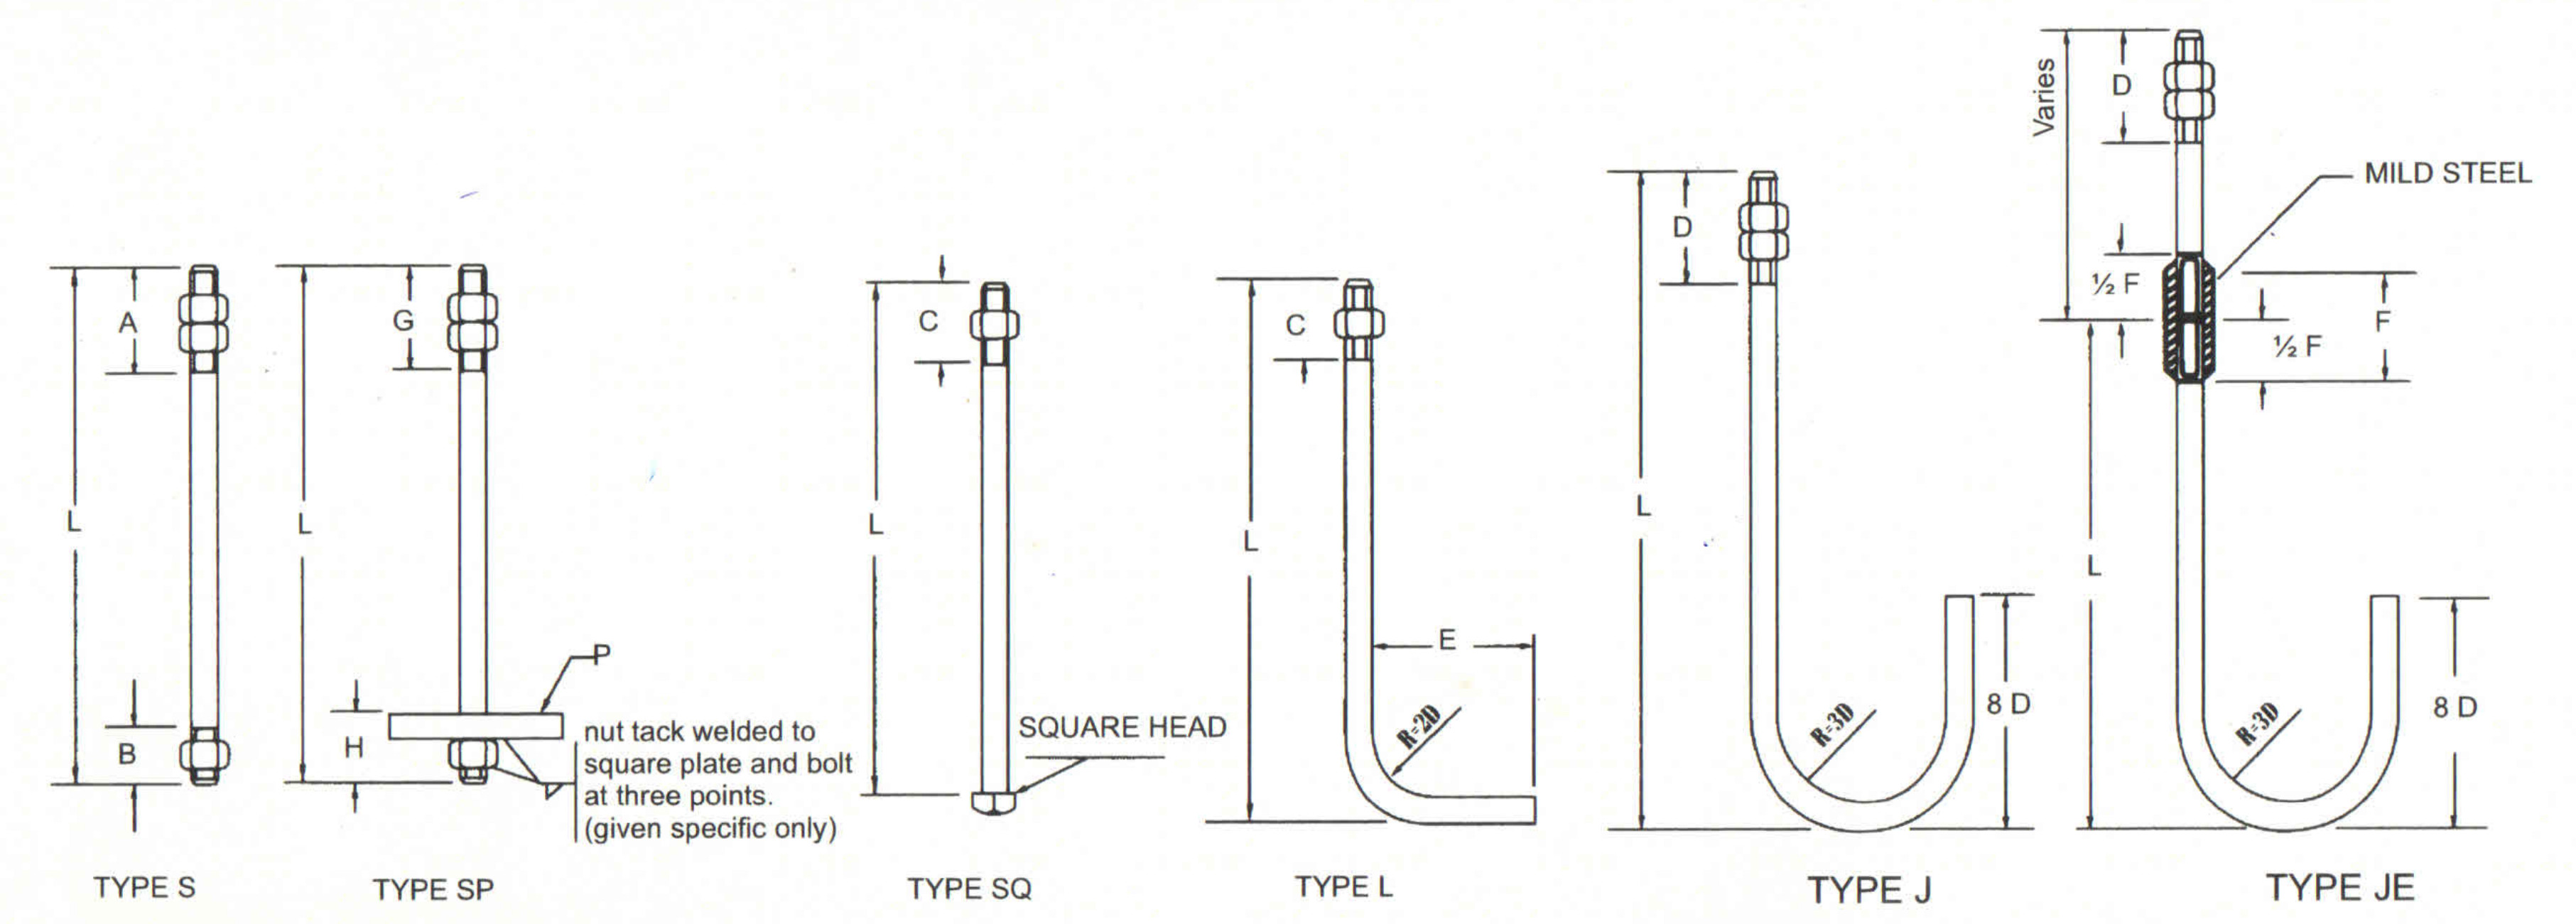 Anchor bolts: dimensions, types, application